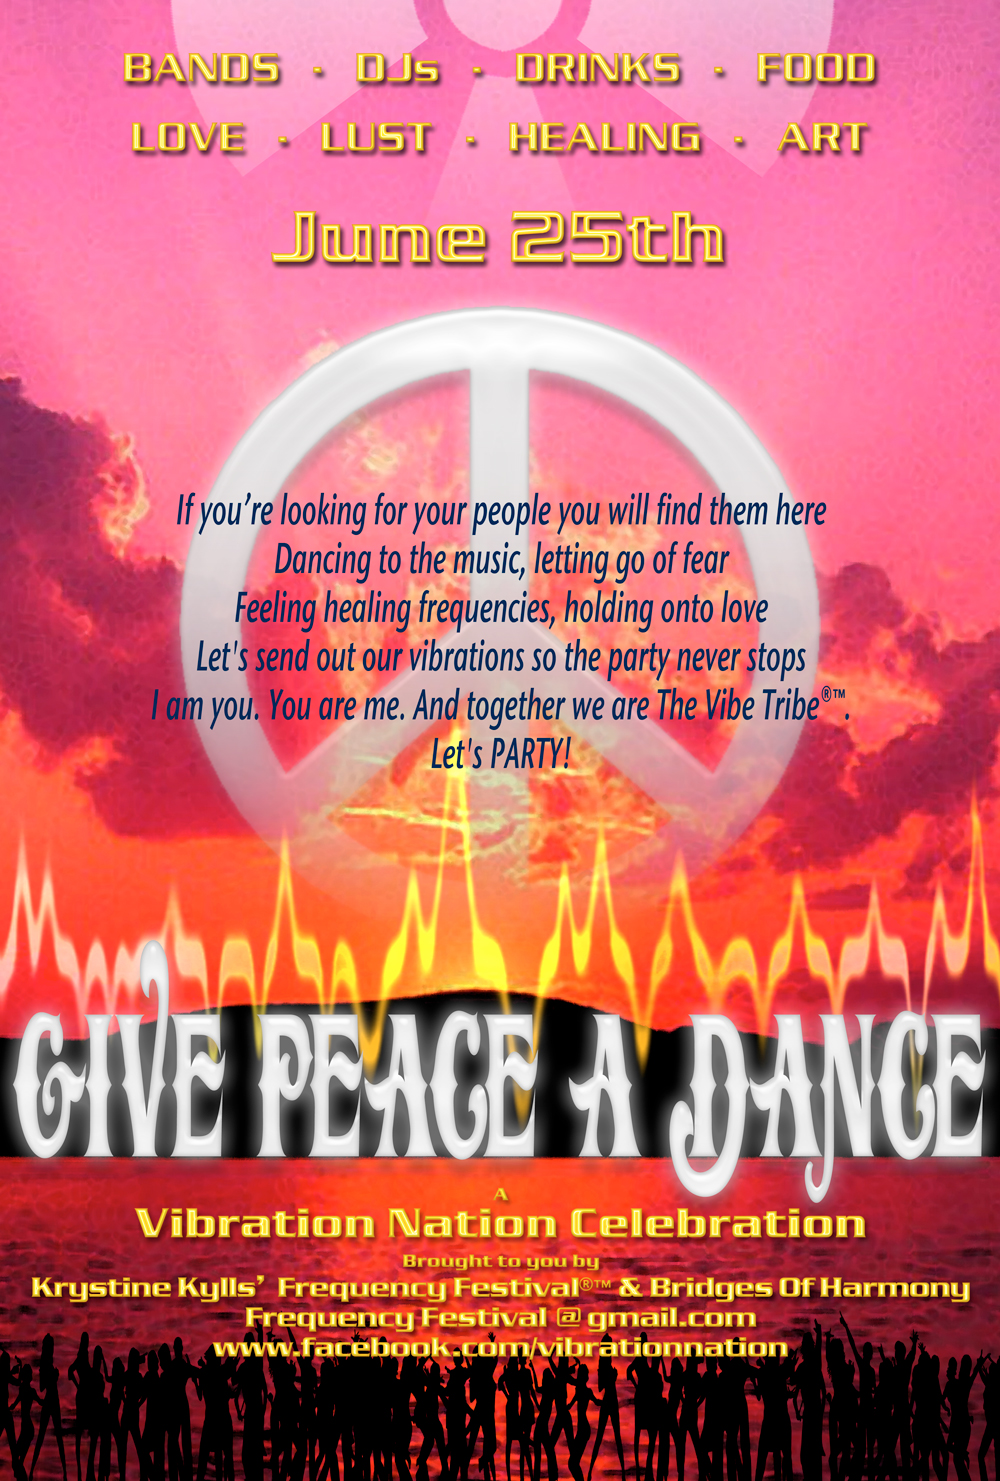 Give+Peace+A+Dance+festival+poster.jpg